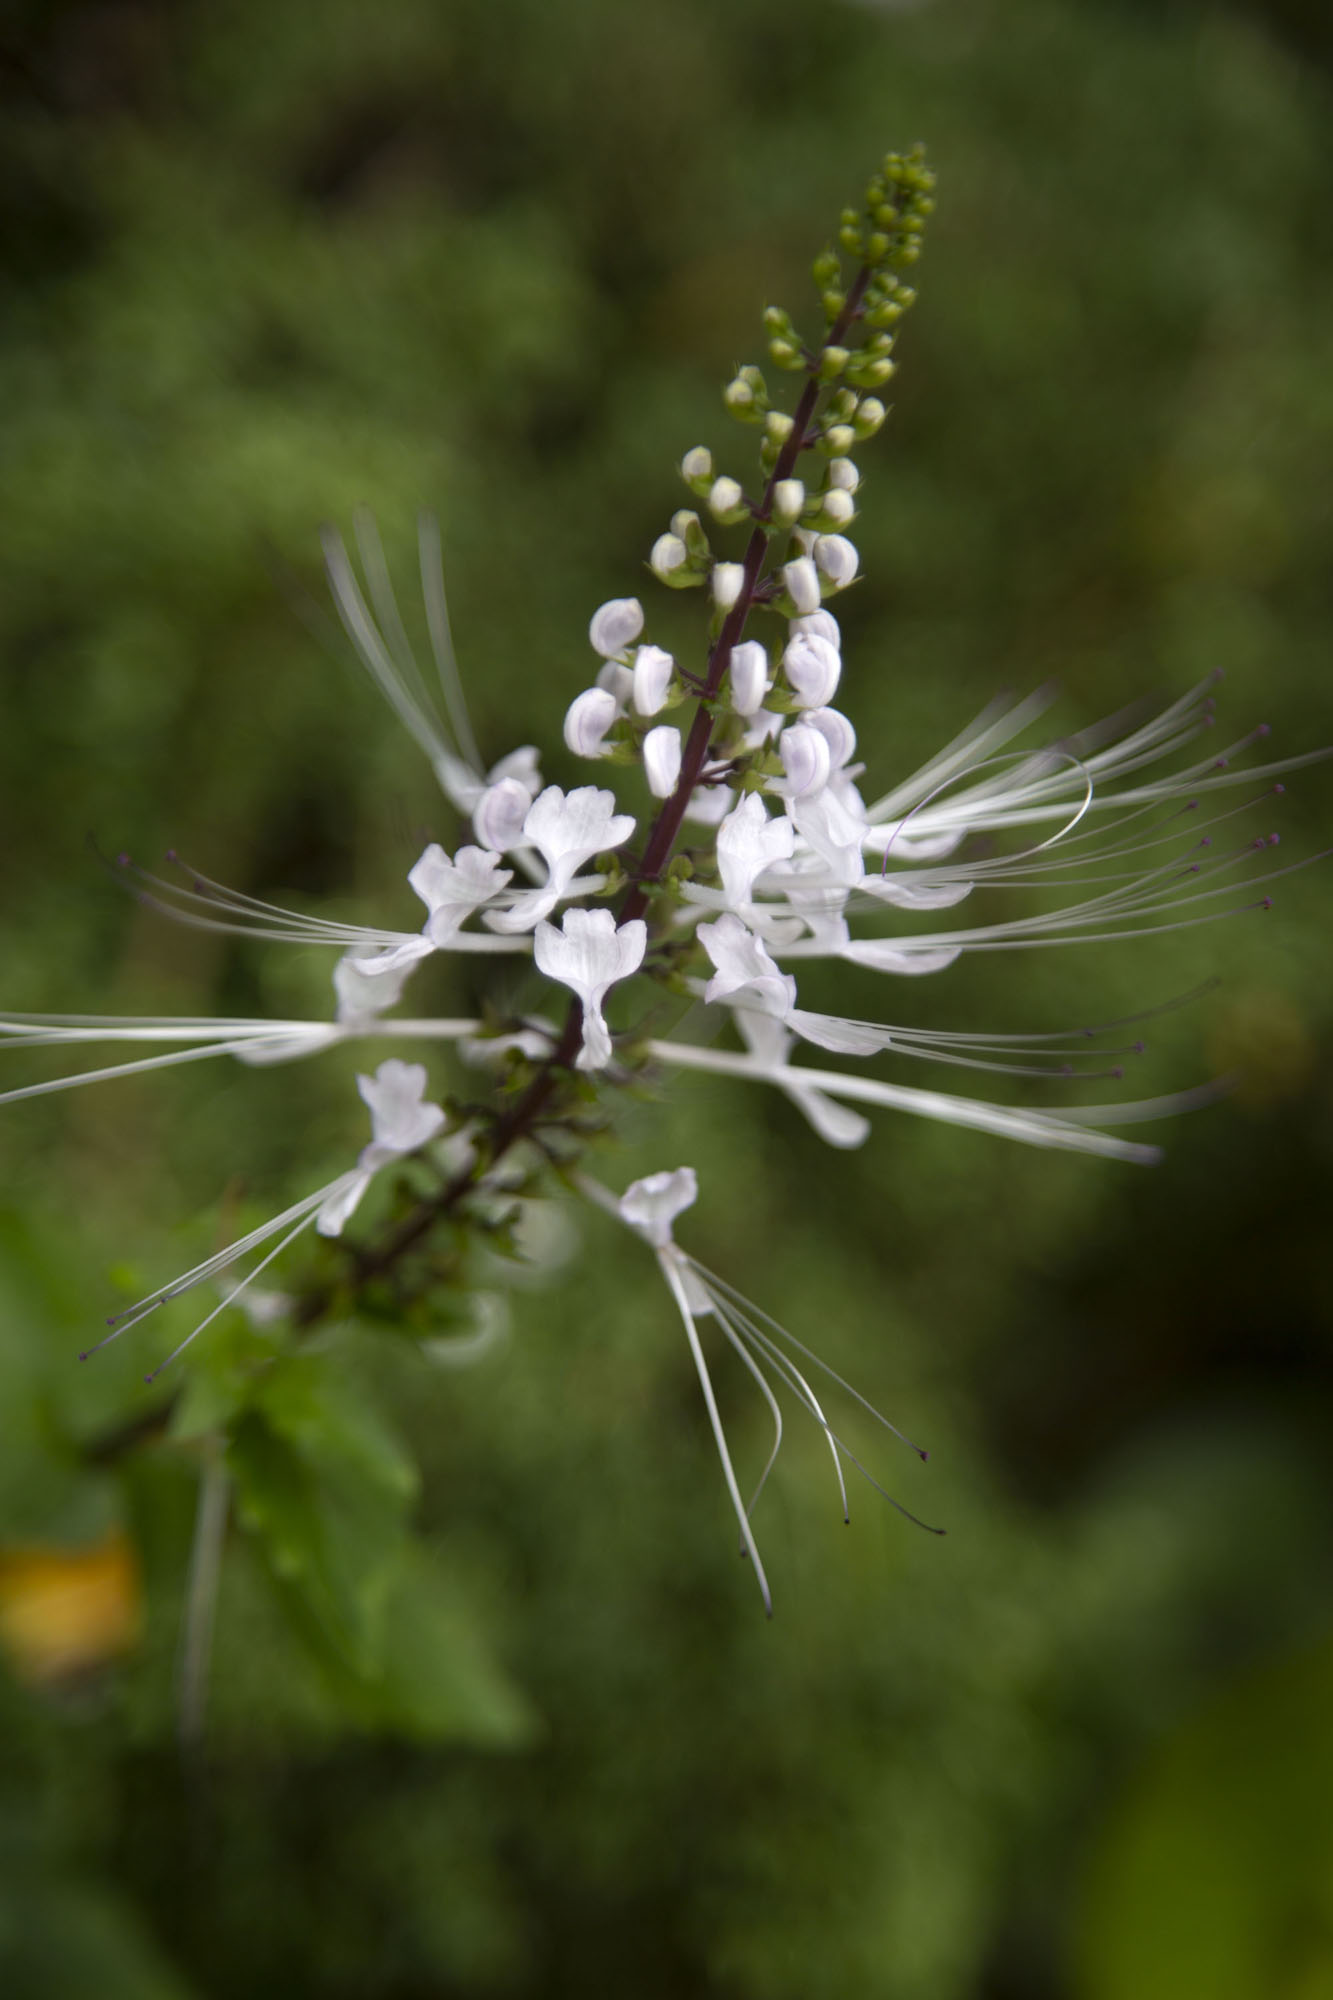 Exquisite white flower in the botanic gardens | Singapore Botanic Gardens | Singapour